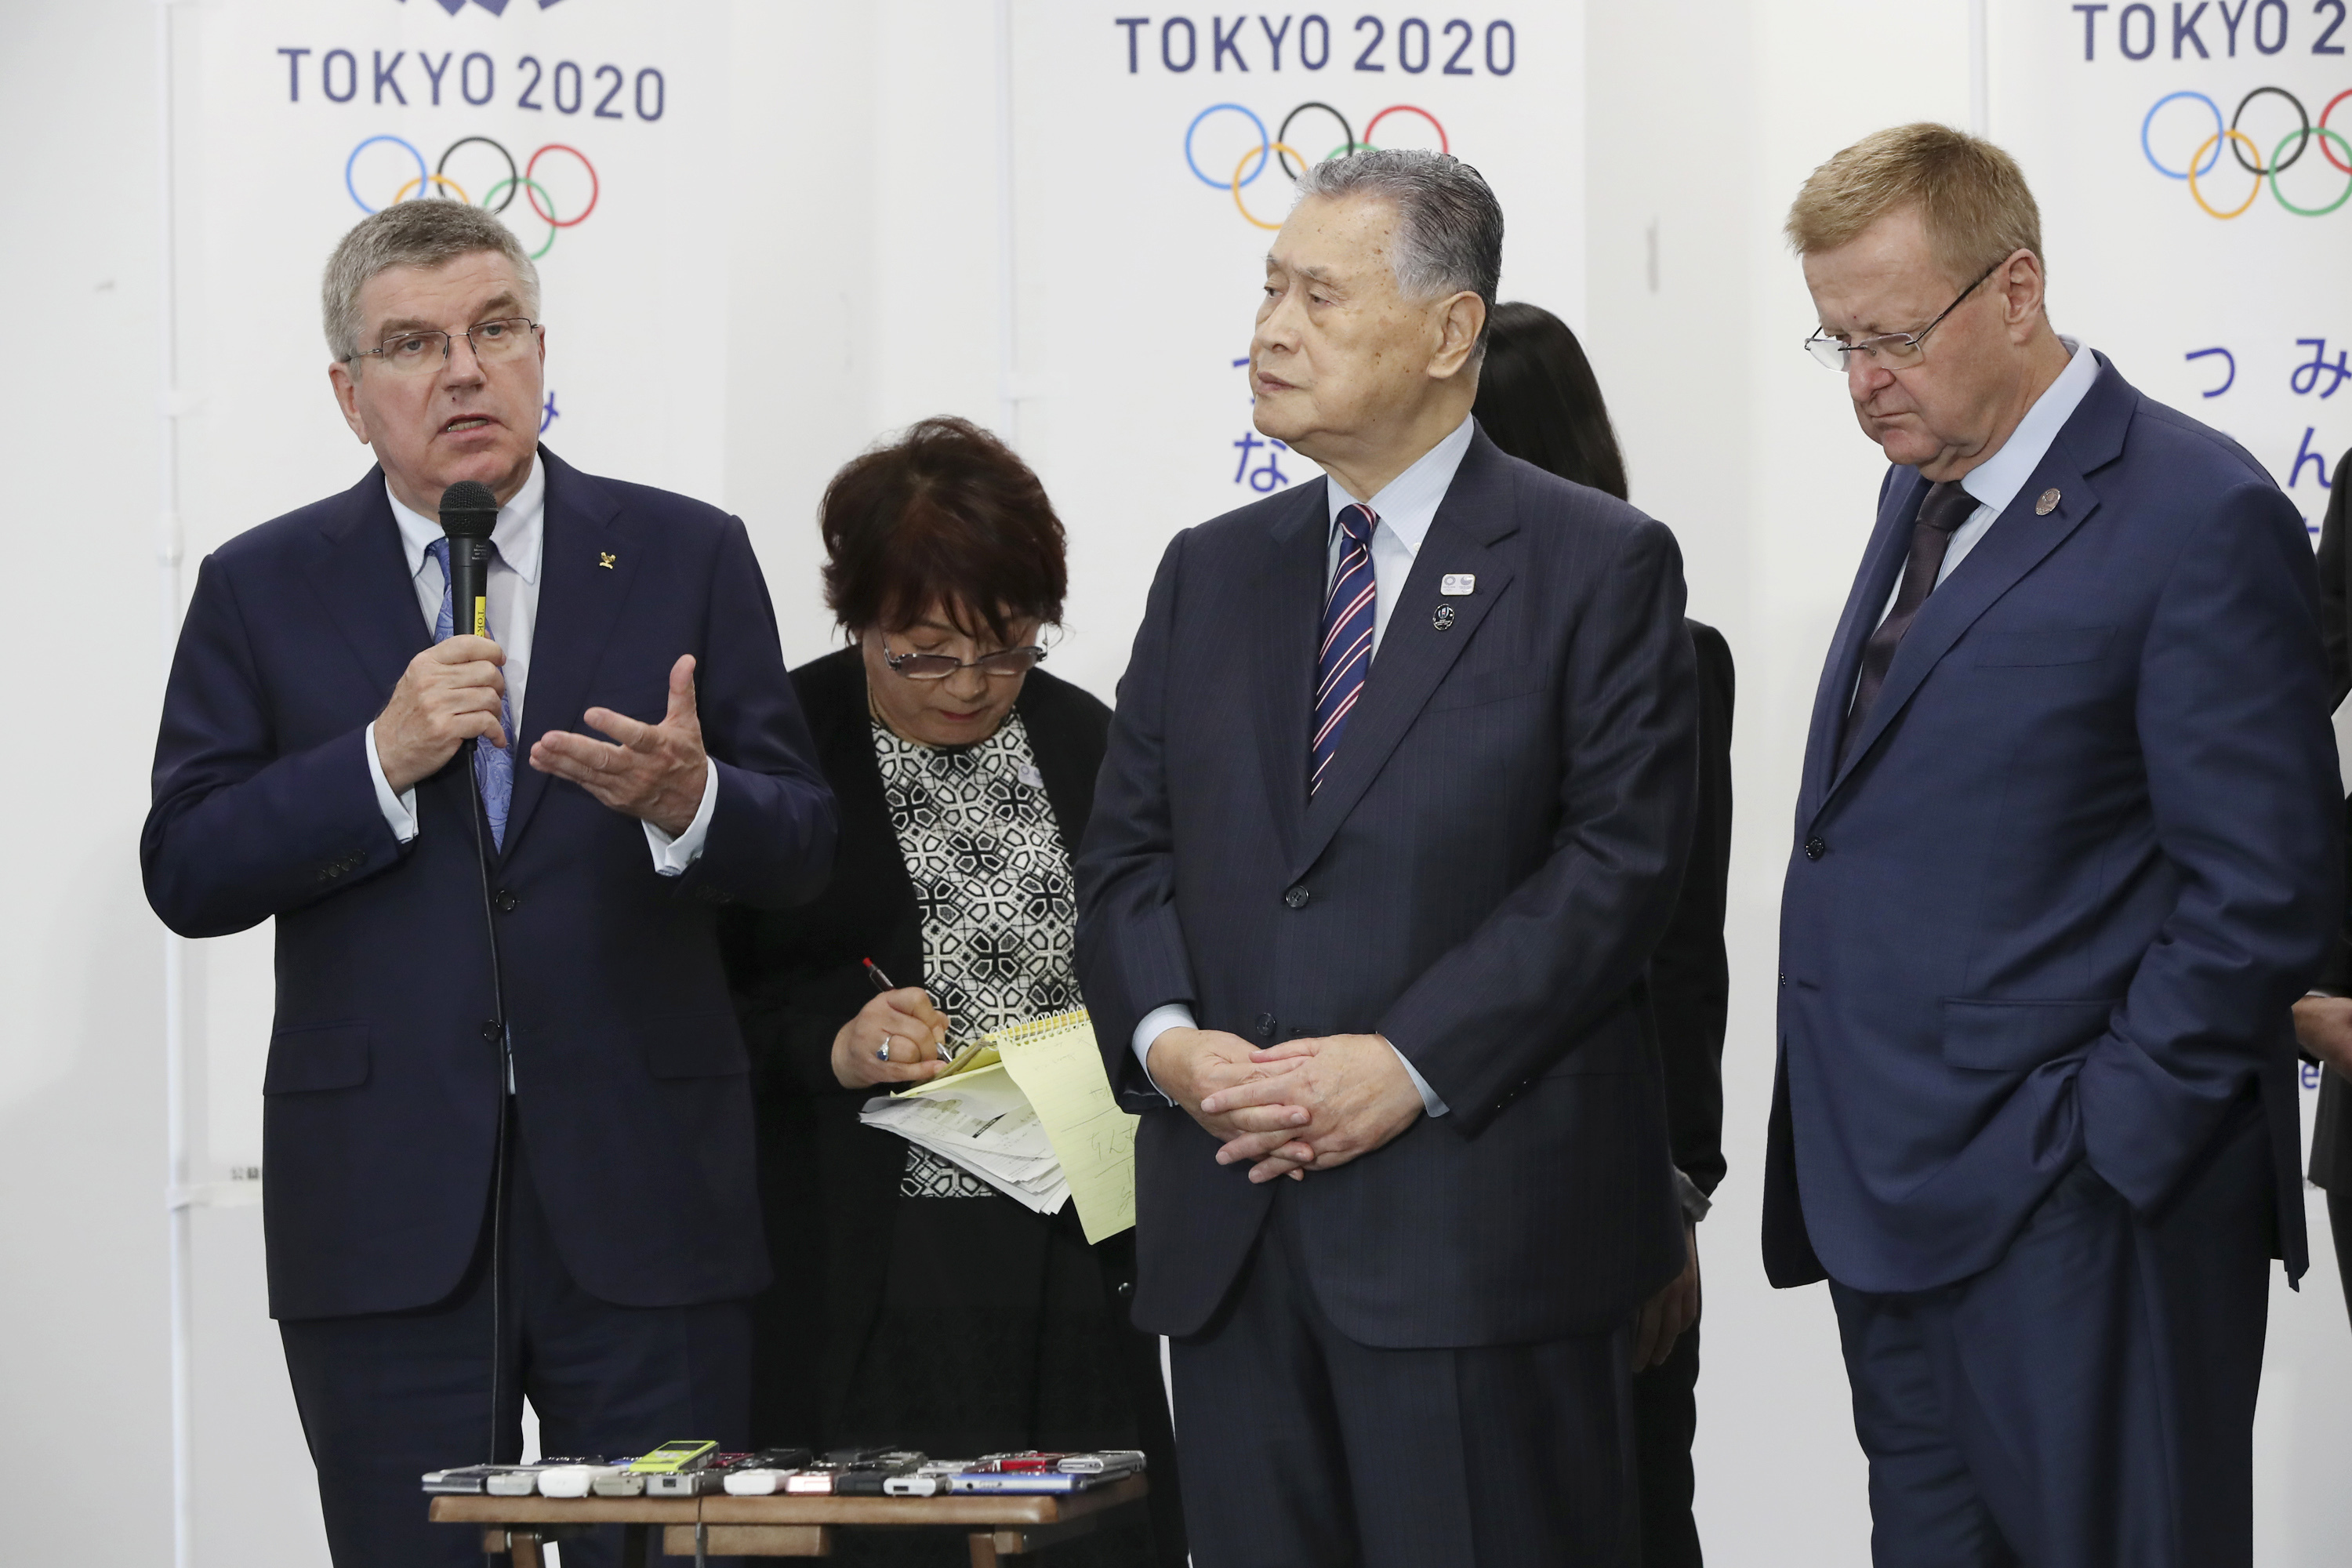 International Olympic Committee President Thomas Bach, left, flanked by Tokyo 2020 Olympic Organising Committee President Yoshiro Mori, center, and IOC Vice President John Coates, right, speaks during a meeting with board members of the Tokyo Organising C